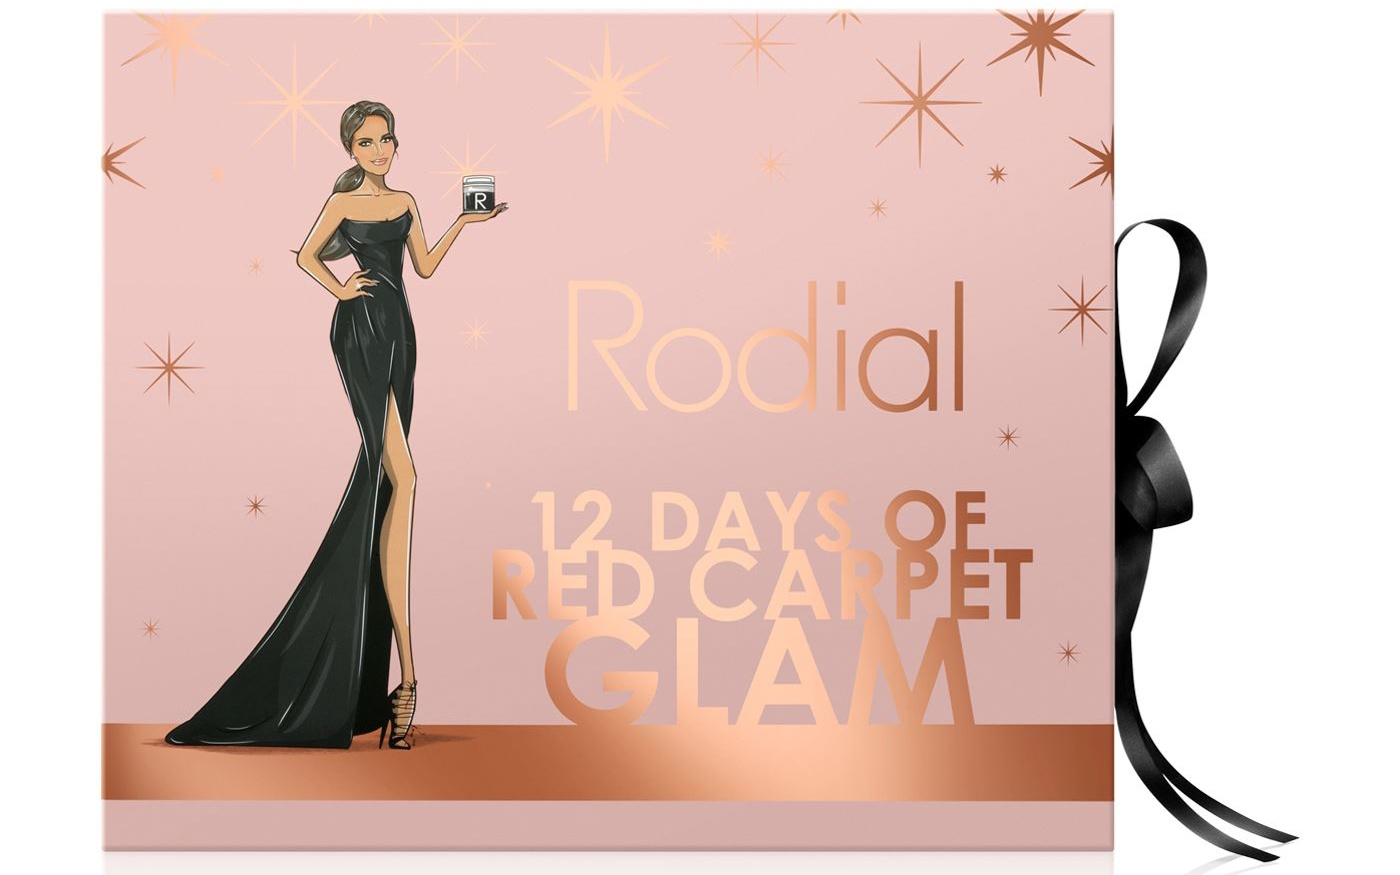 Rodial advent calendar 2019 - The LDN Diaries